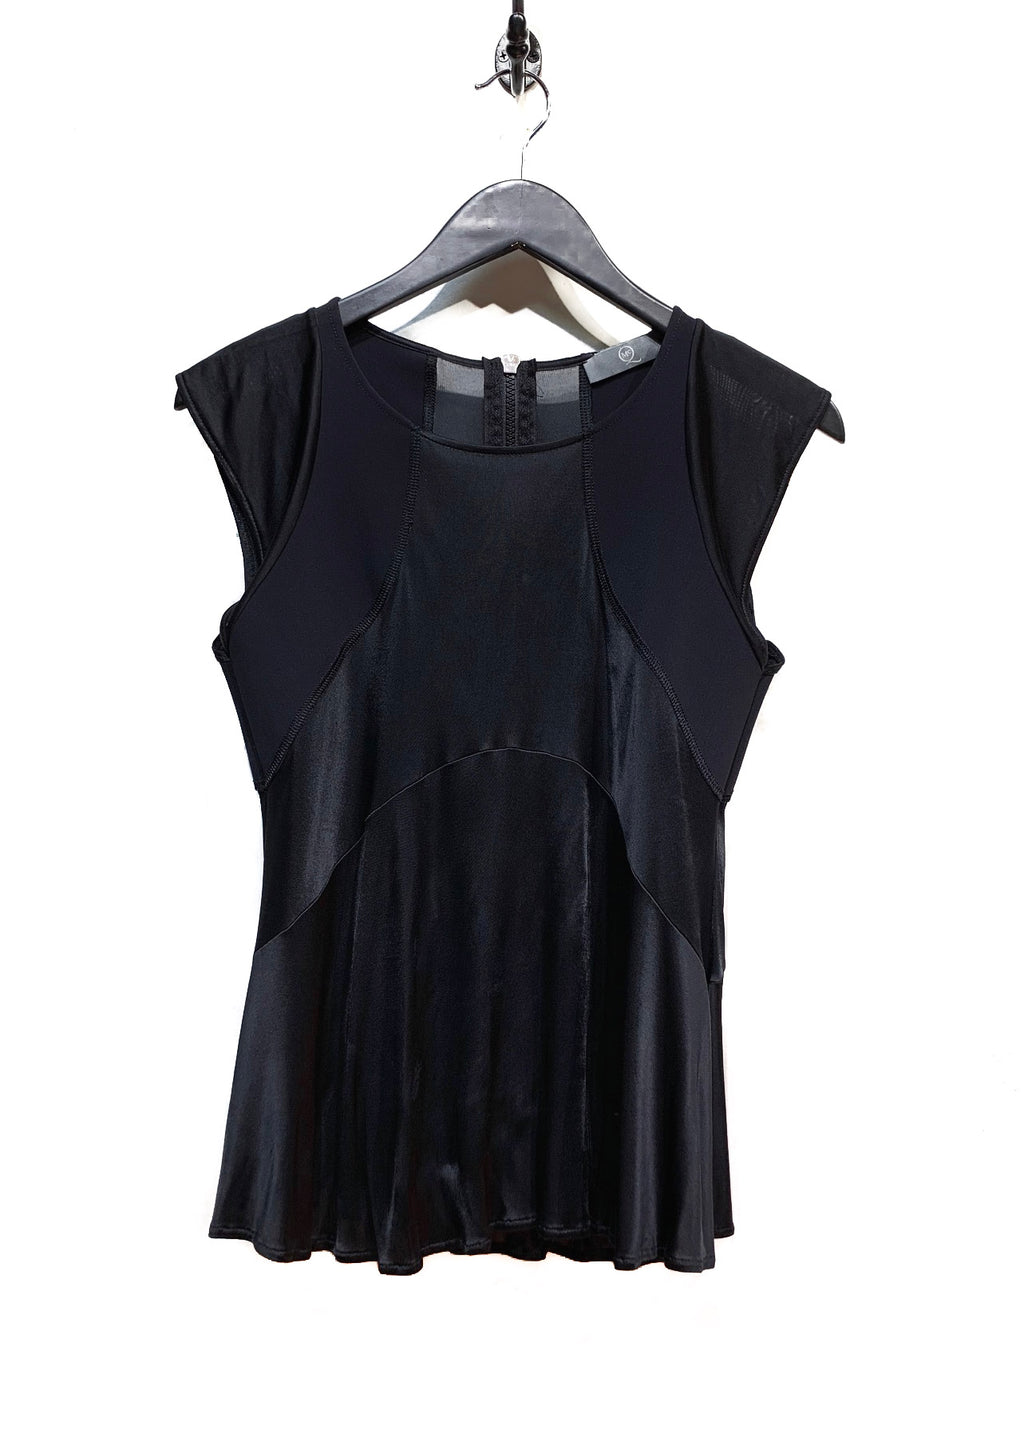 McQ Black Shiny Short Sleeve Blouse